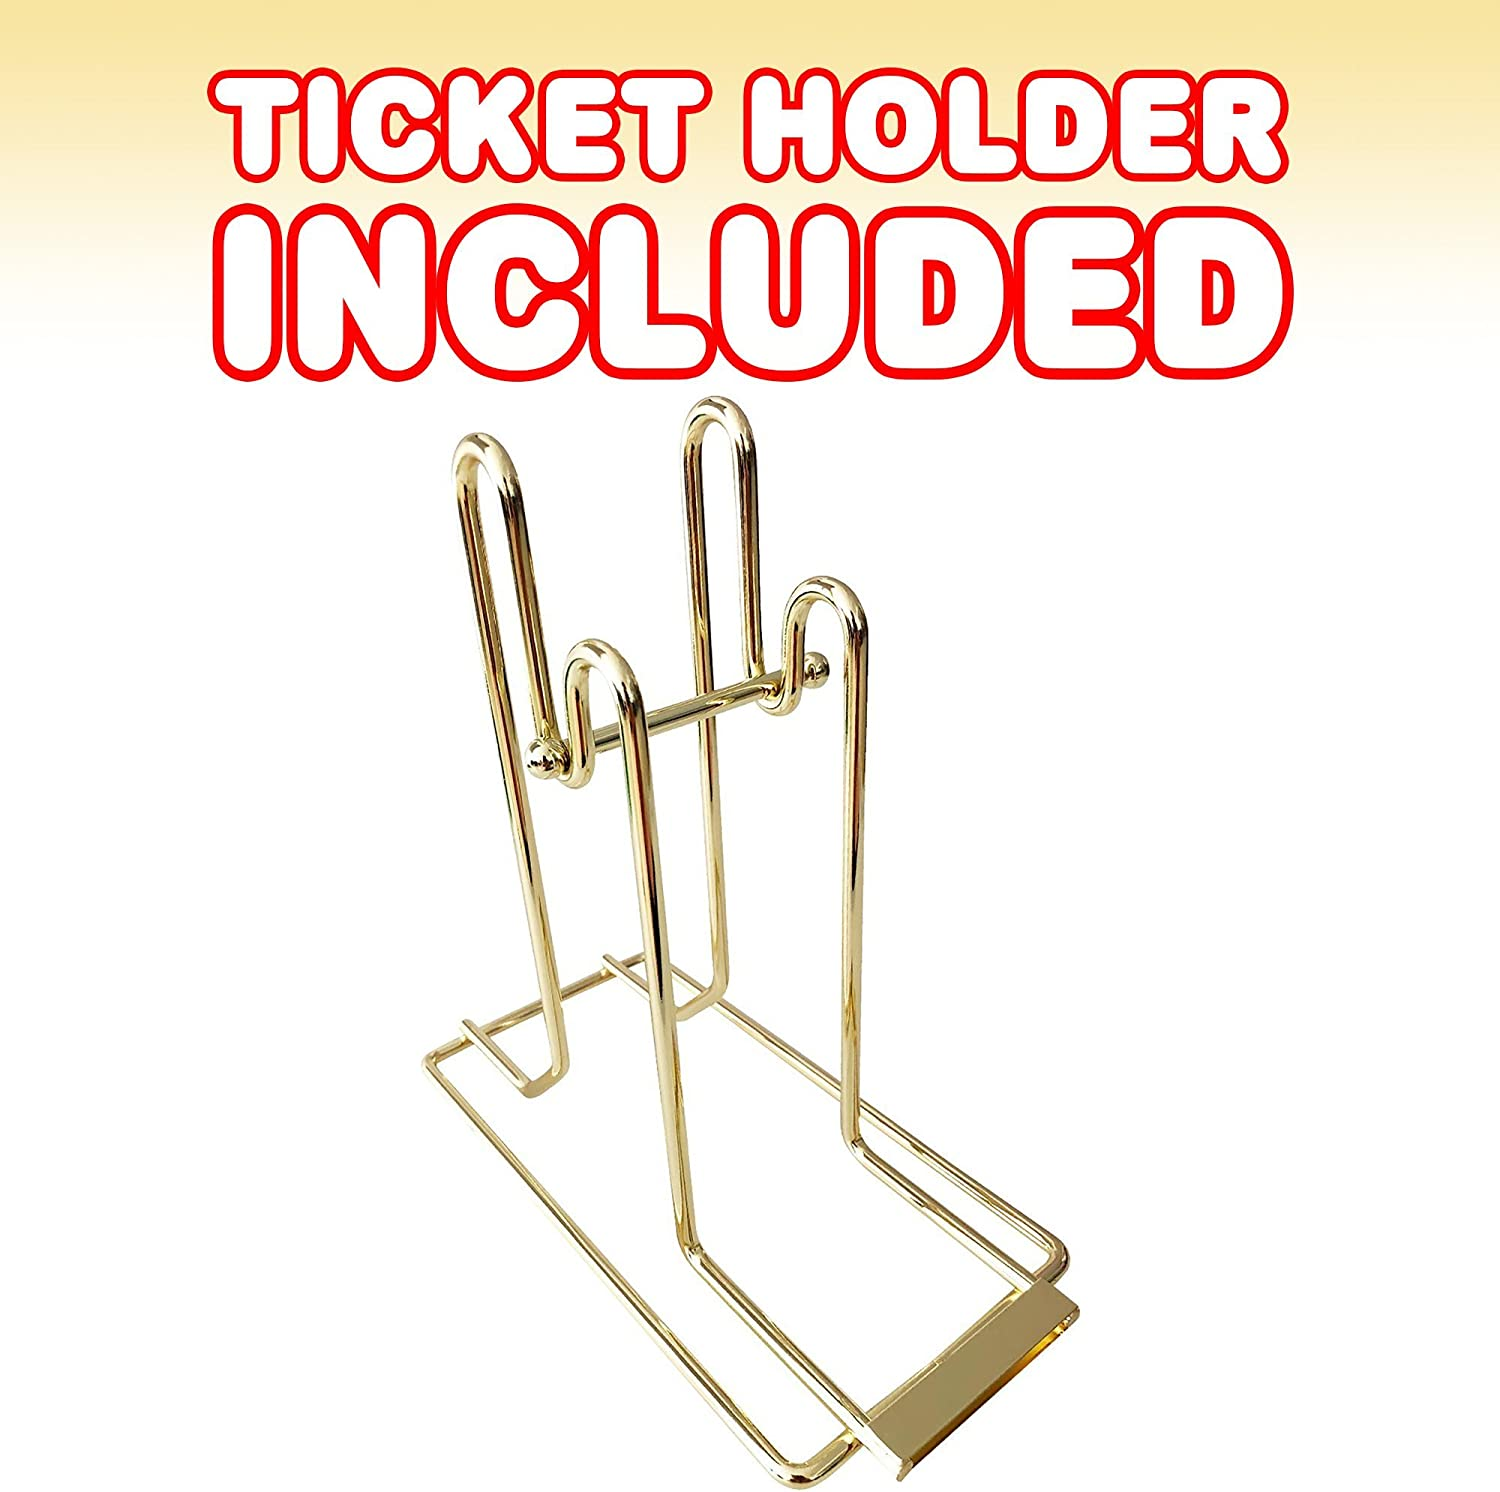 School Events Brass-Plated Ticket Stand 4000 Total Tickets For Carnivals Includes 1 Dual Ticket Dispenser and 2 Ticket Rolls ArtCreativity Carnival Ticket Holder Set Parties and More